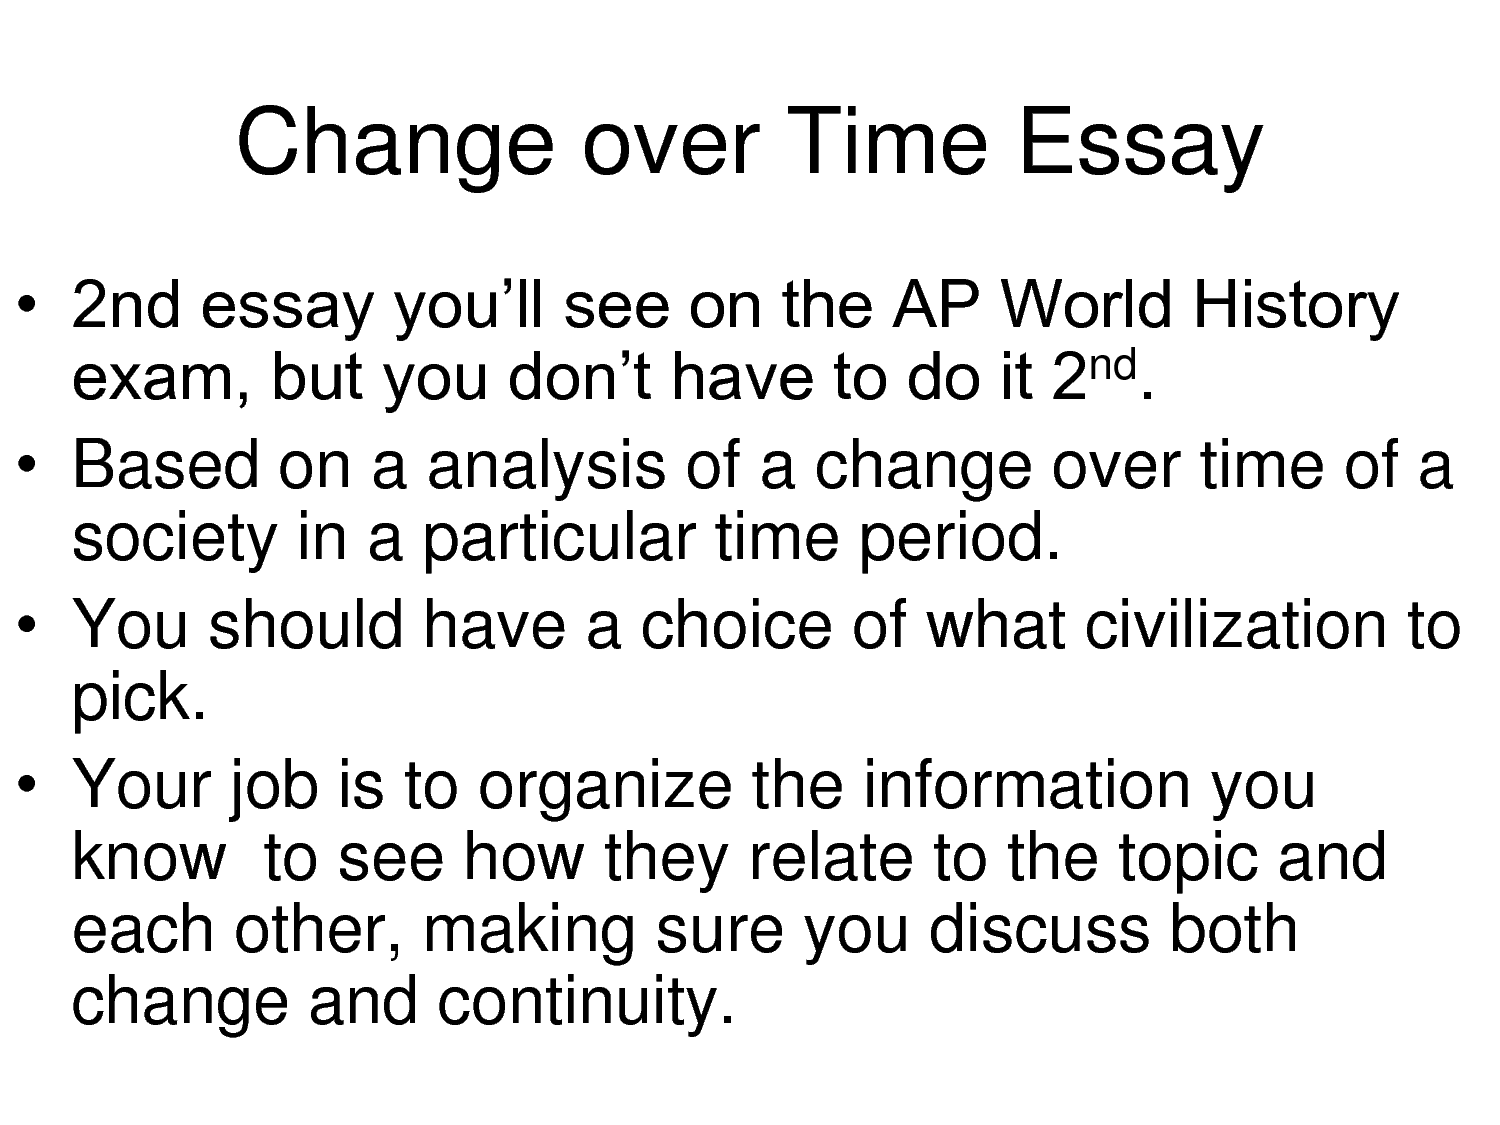 Change and continuity essay about kenya